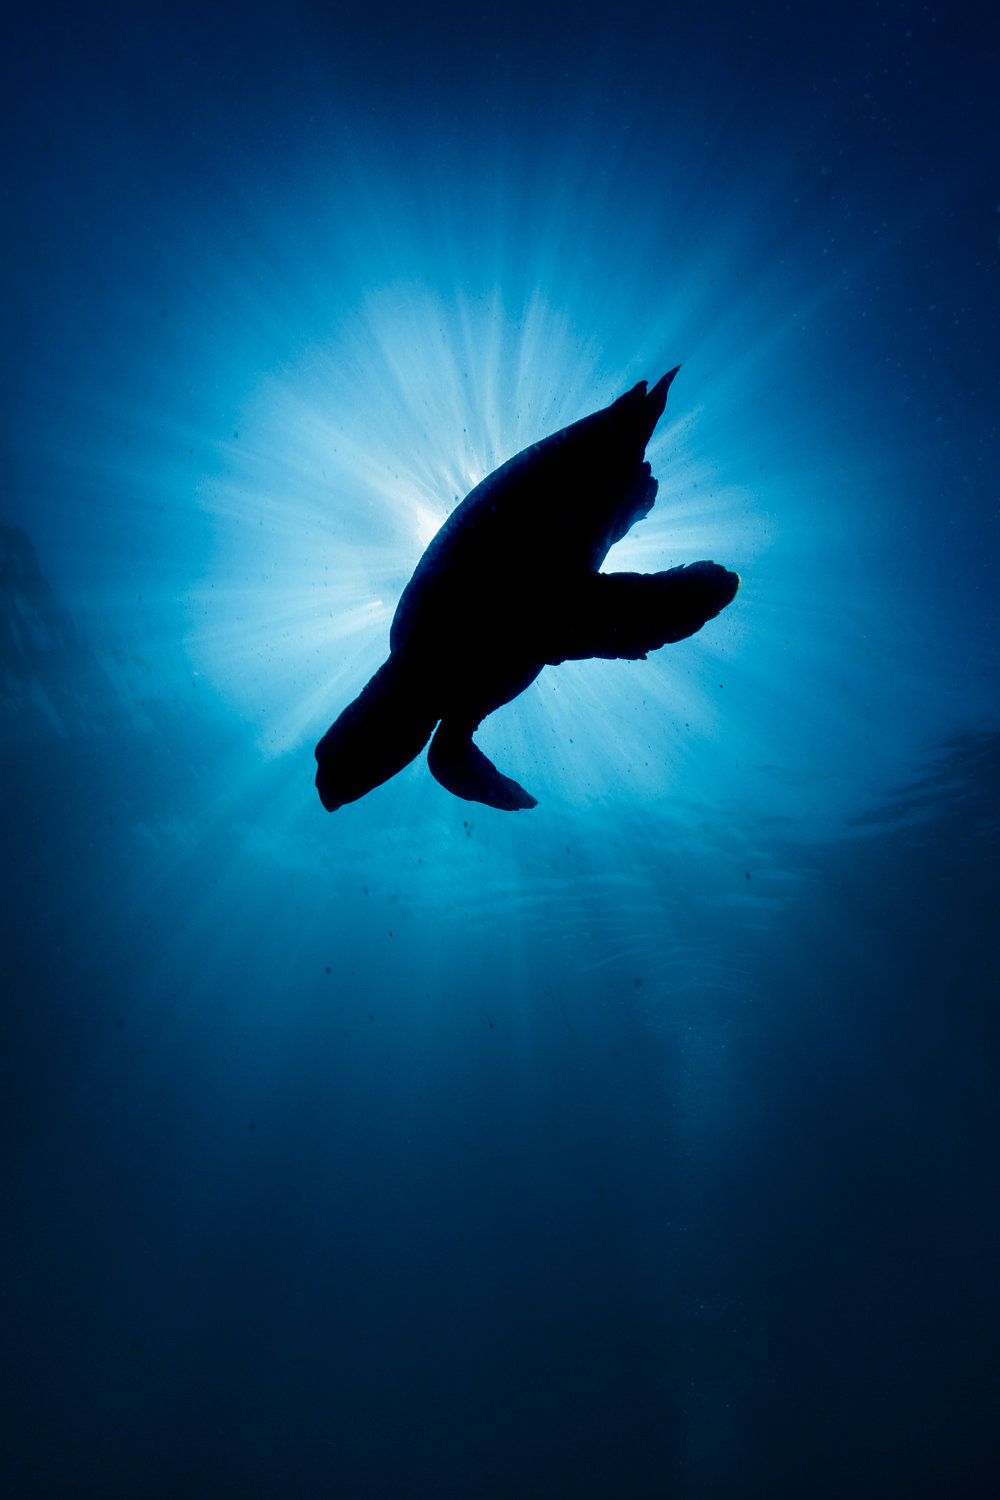 TURTLE SILHOUETTE CREDIT: GRANT THOMAS / coral reef image bank